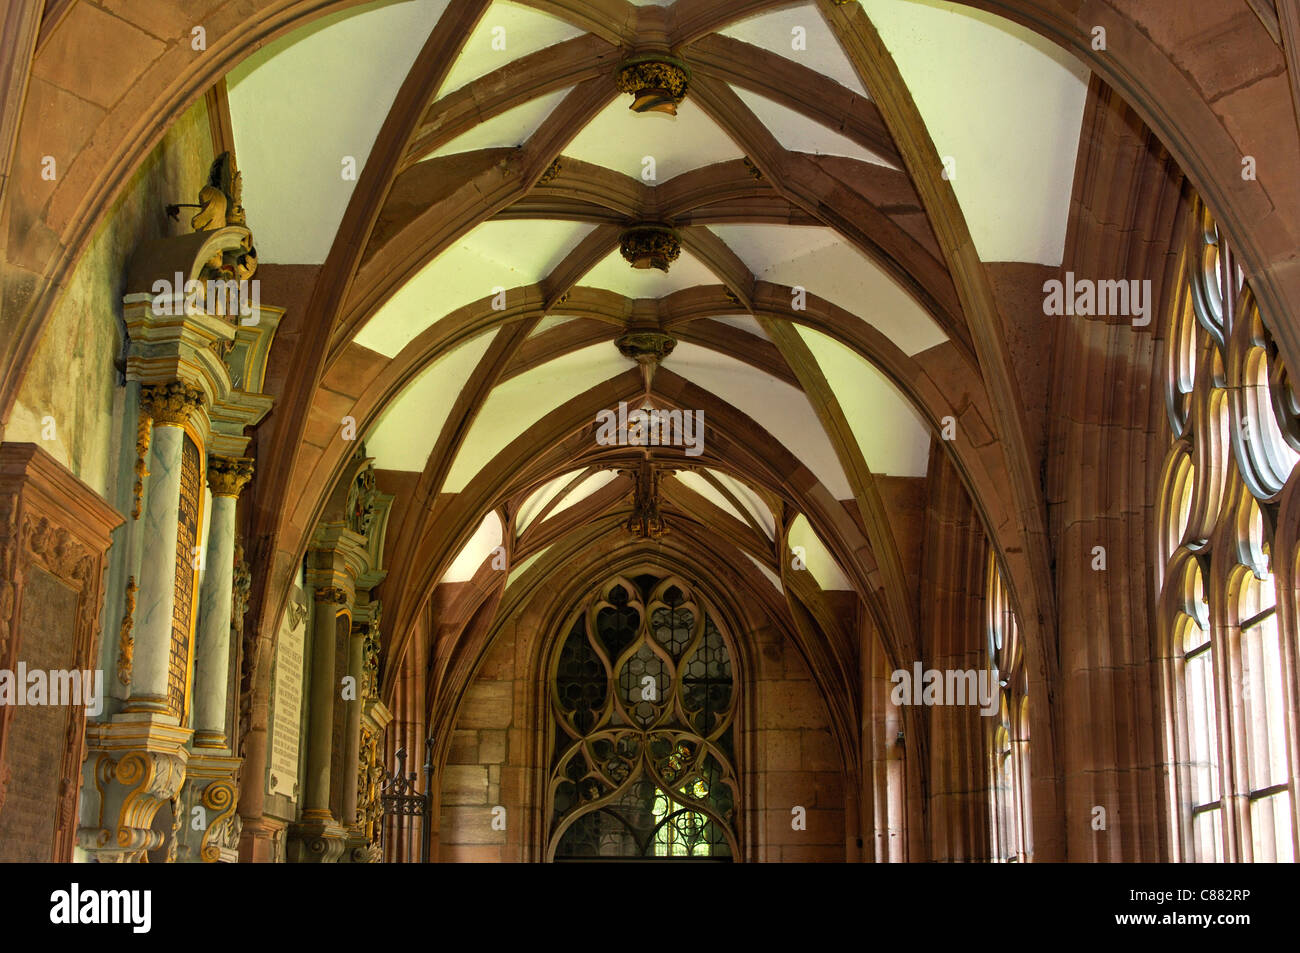 Gothic Rib Vault Ceiling In The Cloister Of Basel Munster Switzerland